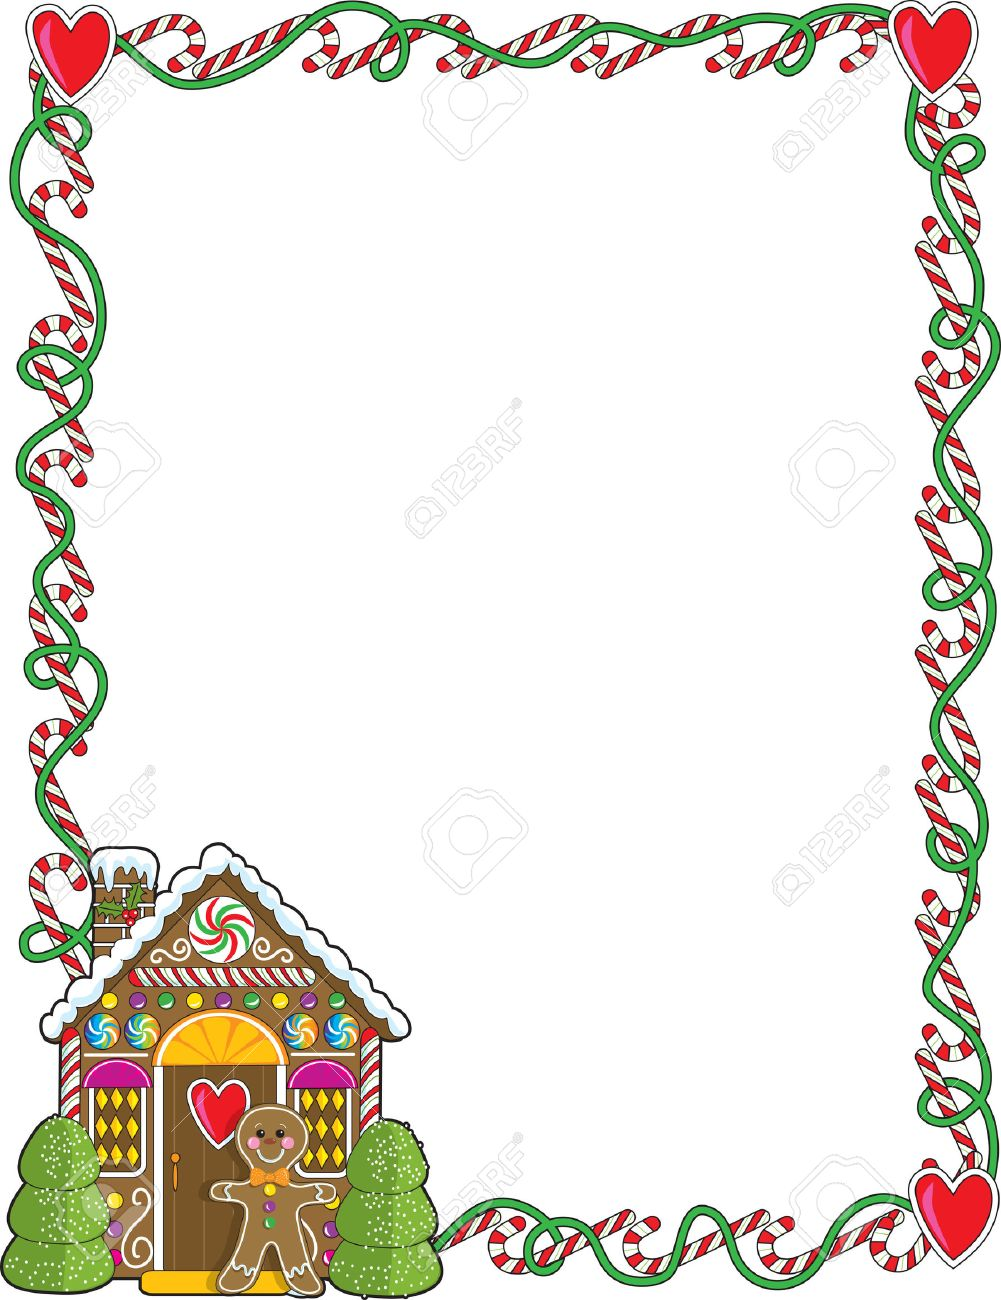 A border or frame featuring Christmas candy canes and a gingerbread...